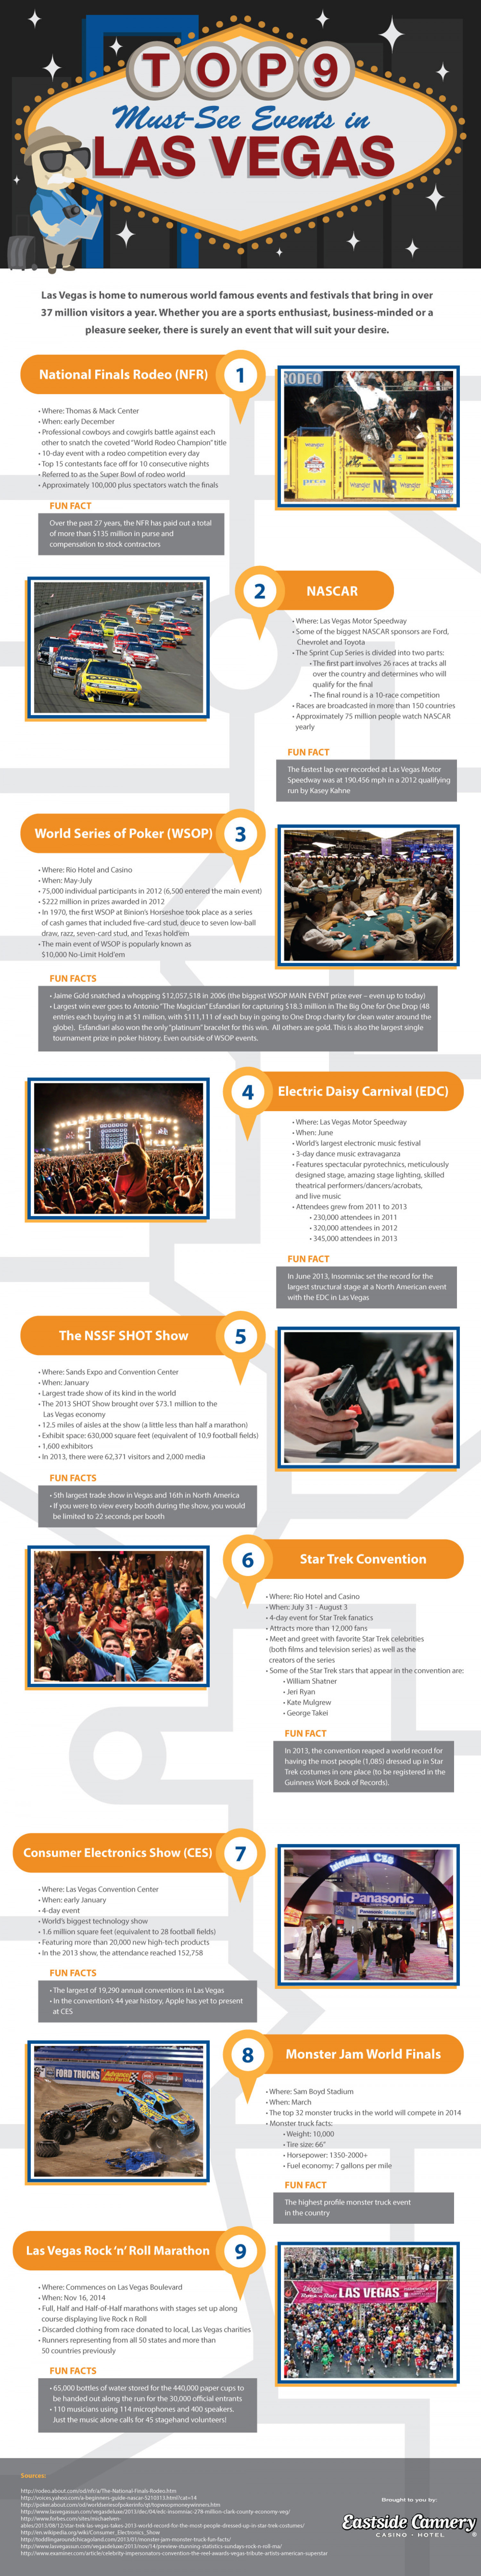 Top 9 Must-See Events in Las Vegas Infographic